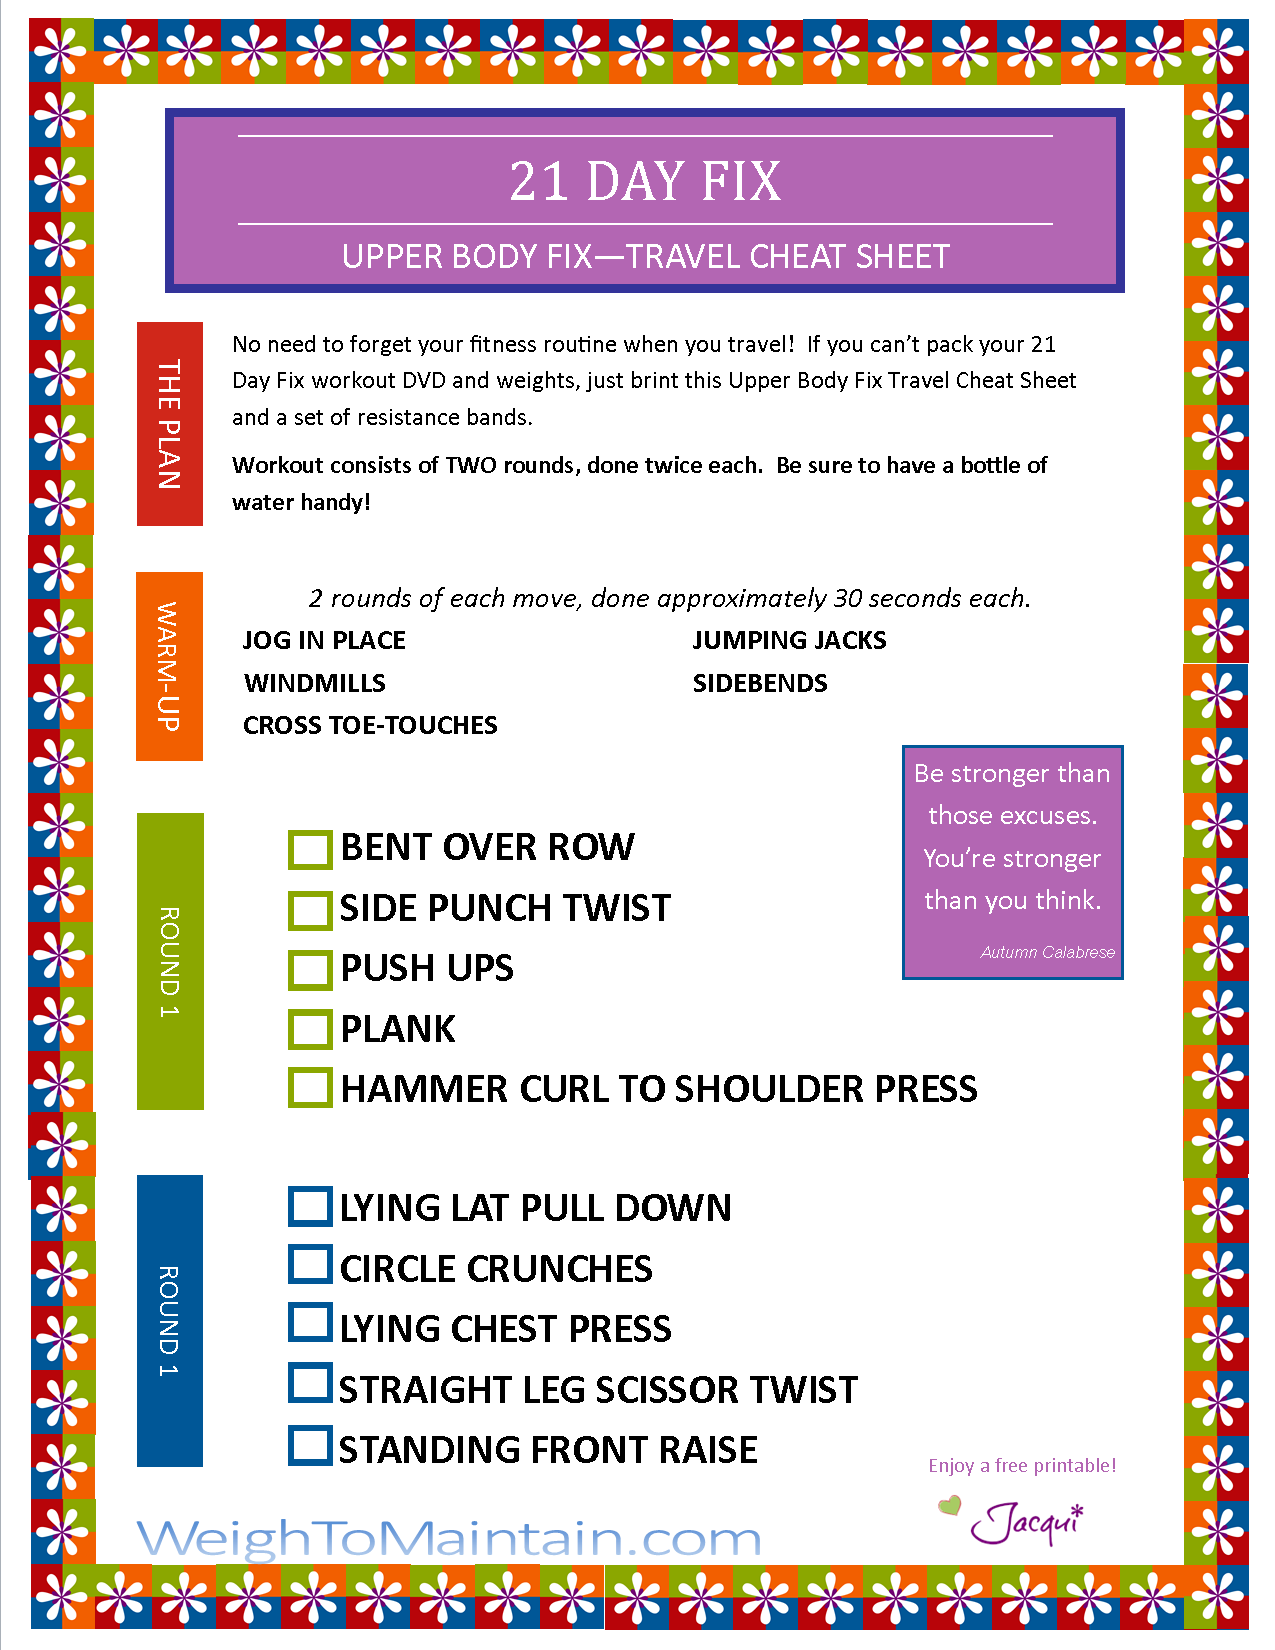 graphic regarding Printable 21 Day Fix named Printables Website Application A Balanced Lifestyle